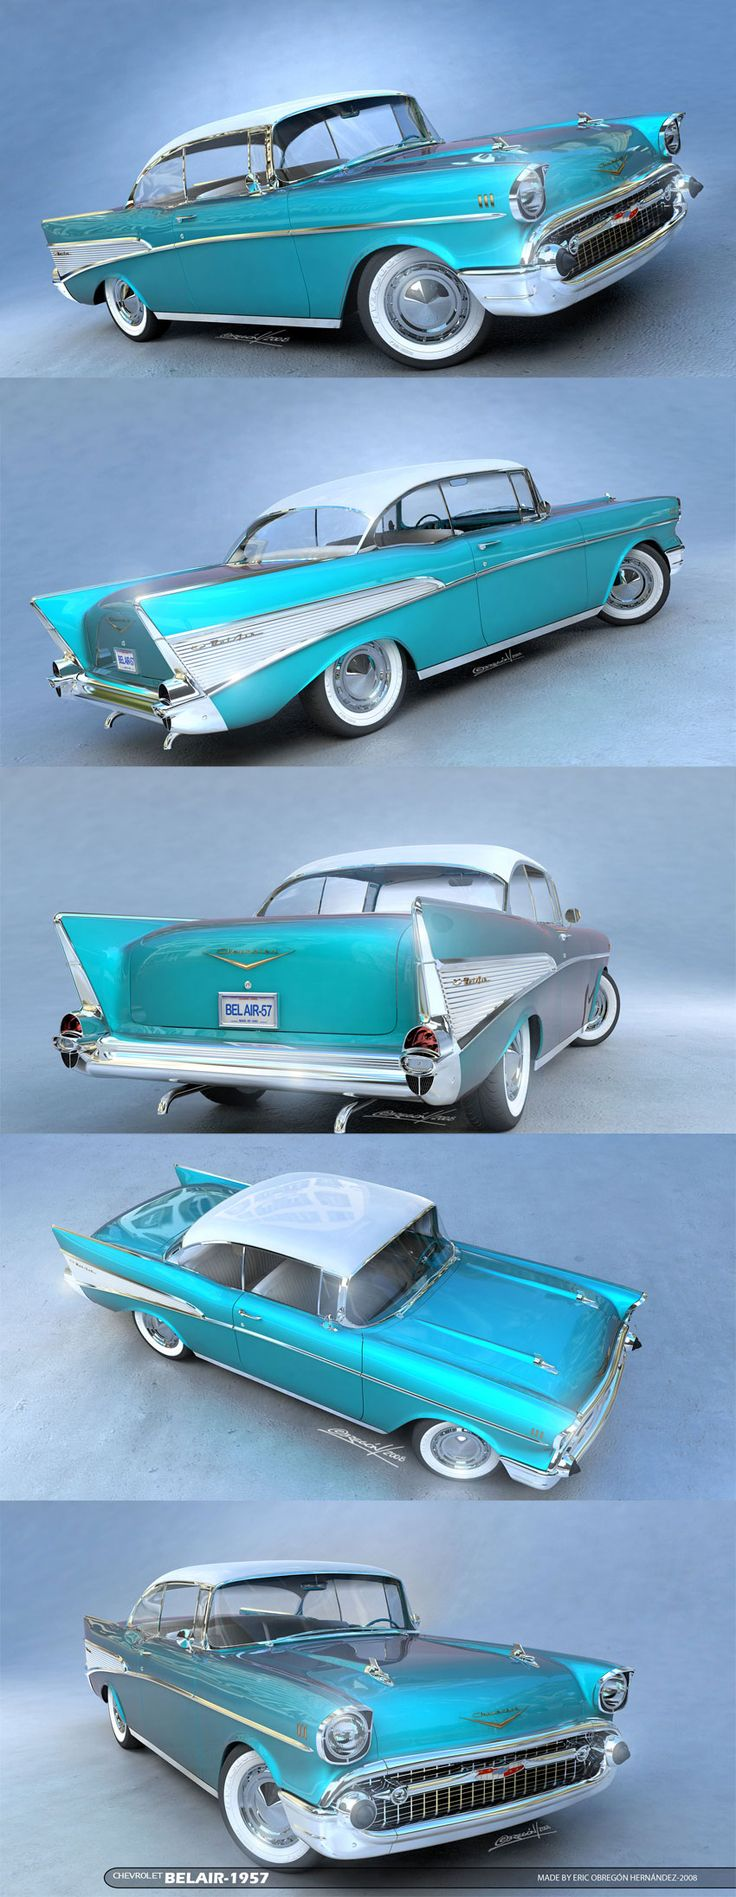 1957 Chevy Bel Air- mine was butter yellow and white. I could put 12 girls in that car! That was before seat belts.